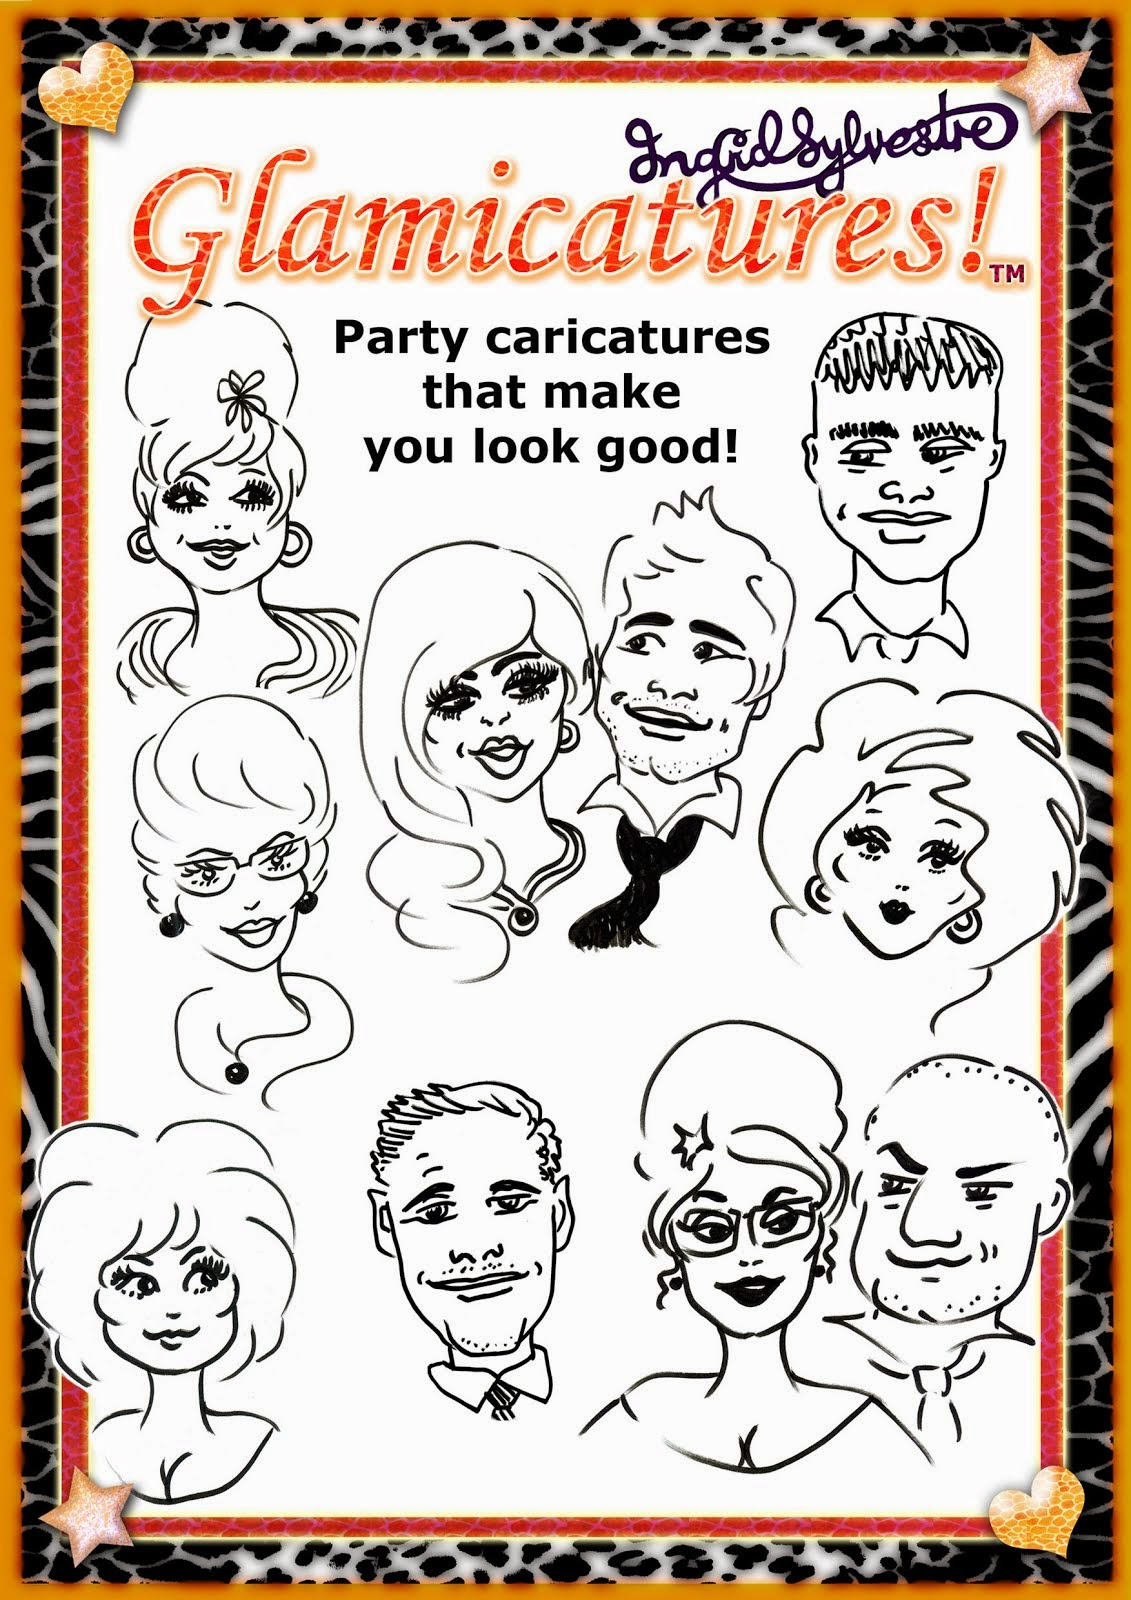 Glamicatures TM Caricatures by Ingrid Sylvestre